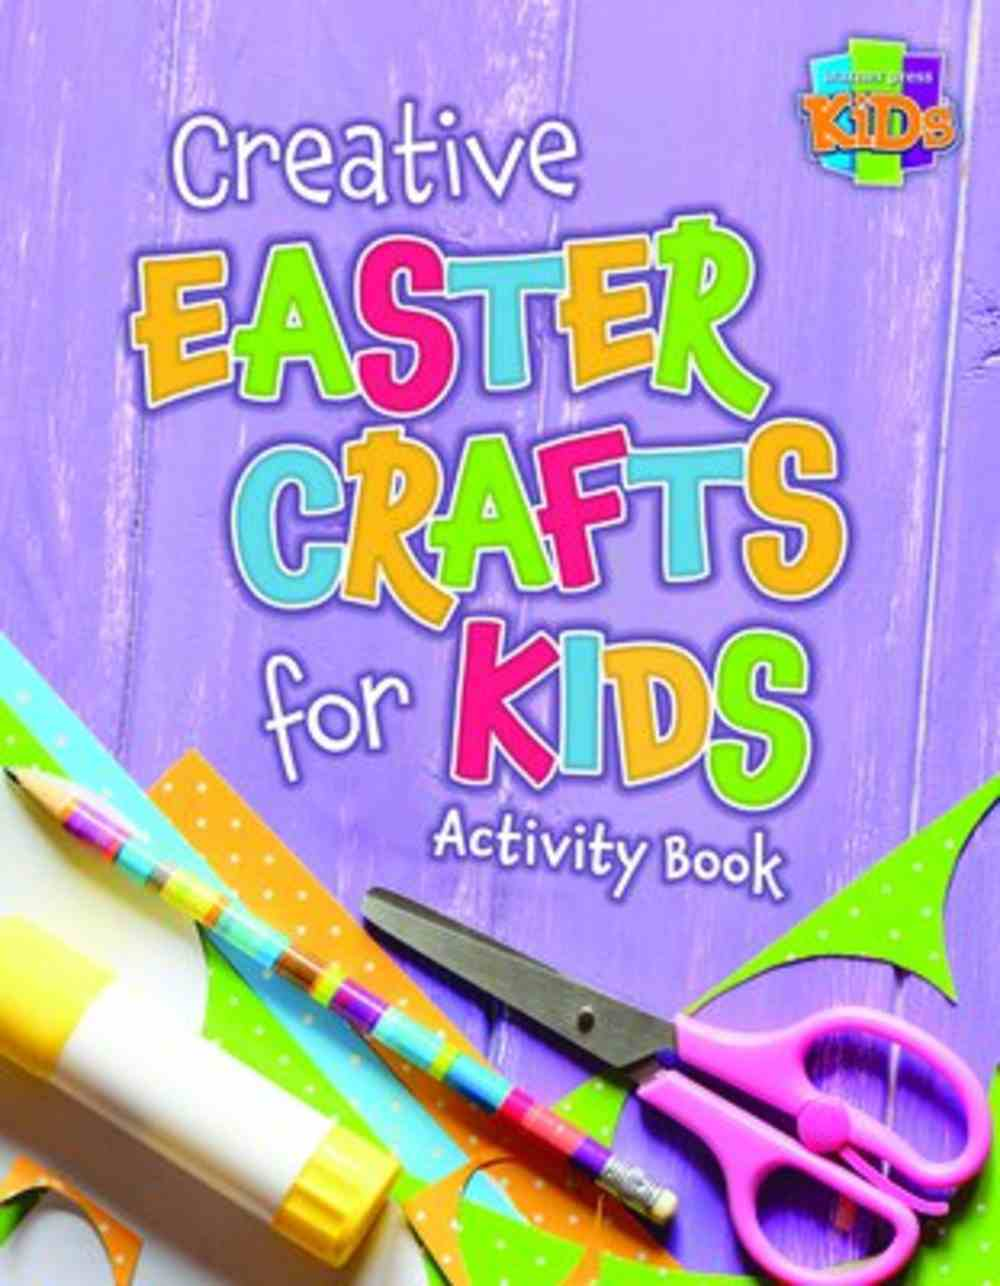 Creative Easter Crafts For Kids Activity Book (NIV) (Warner Press Colouring & Activity Books Series) Paperback